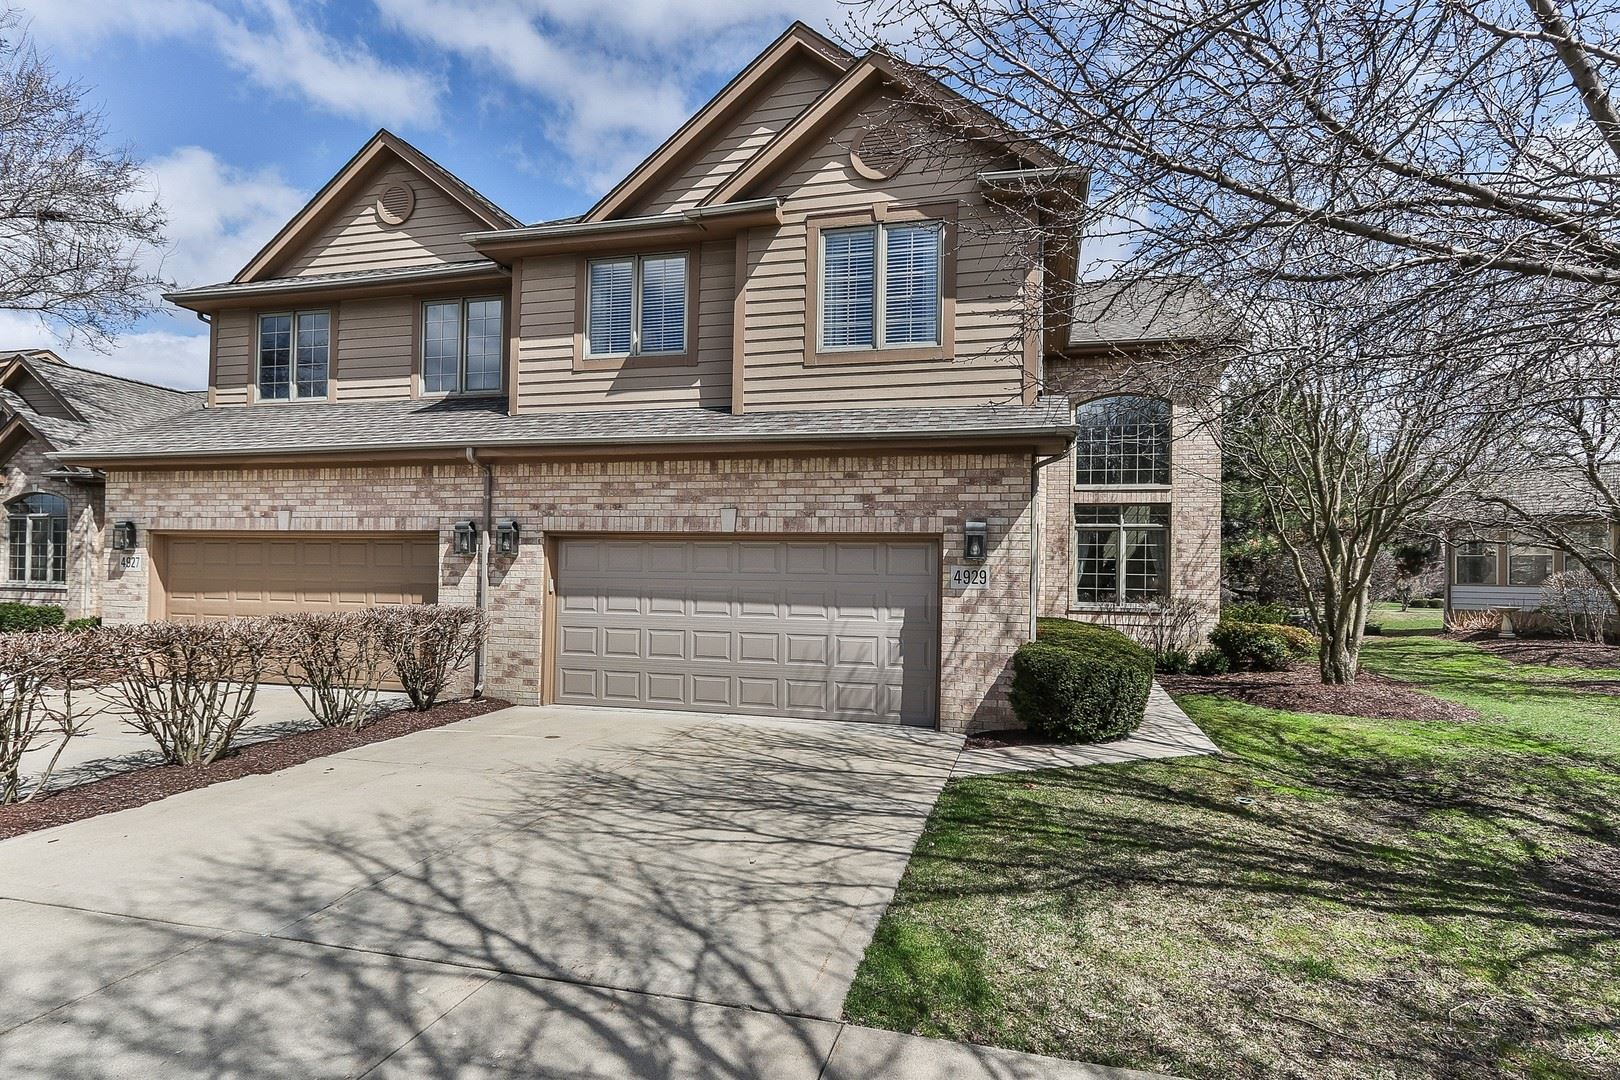 4929 Commonwealth Avenue, Western Springs, IL 60558 - #: 10683528